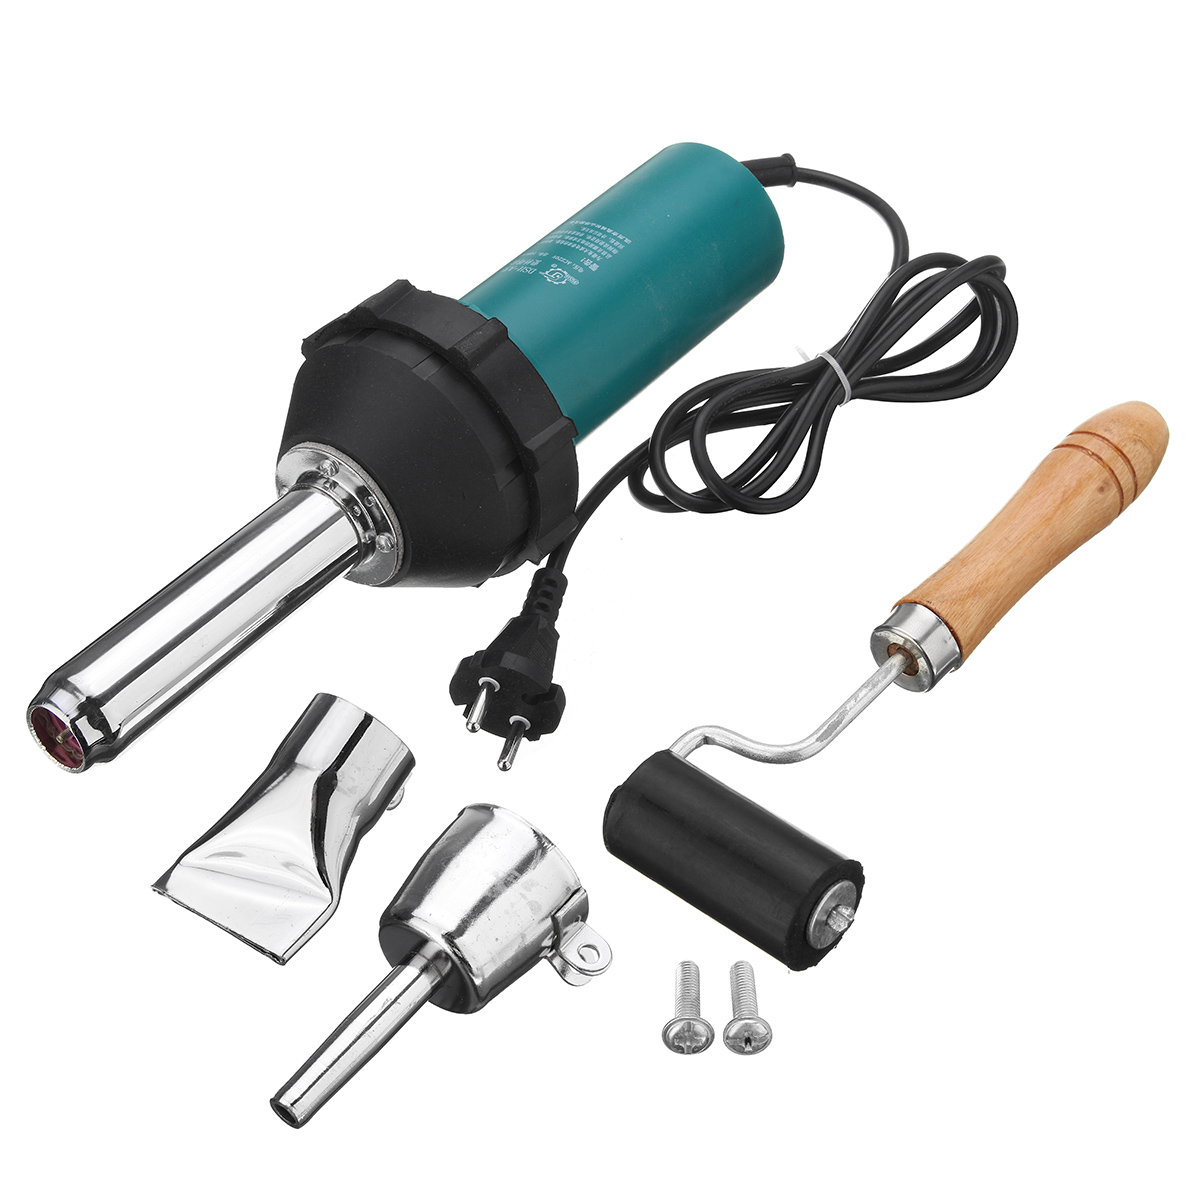 Gas heat guns and welding inverters to buy in Minsk 33